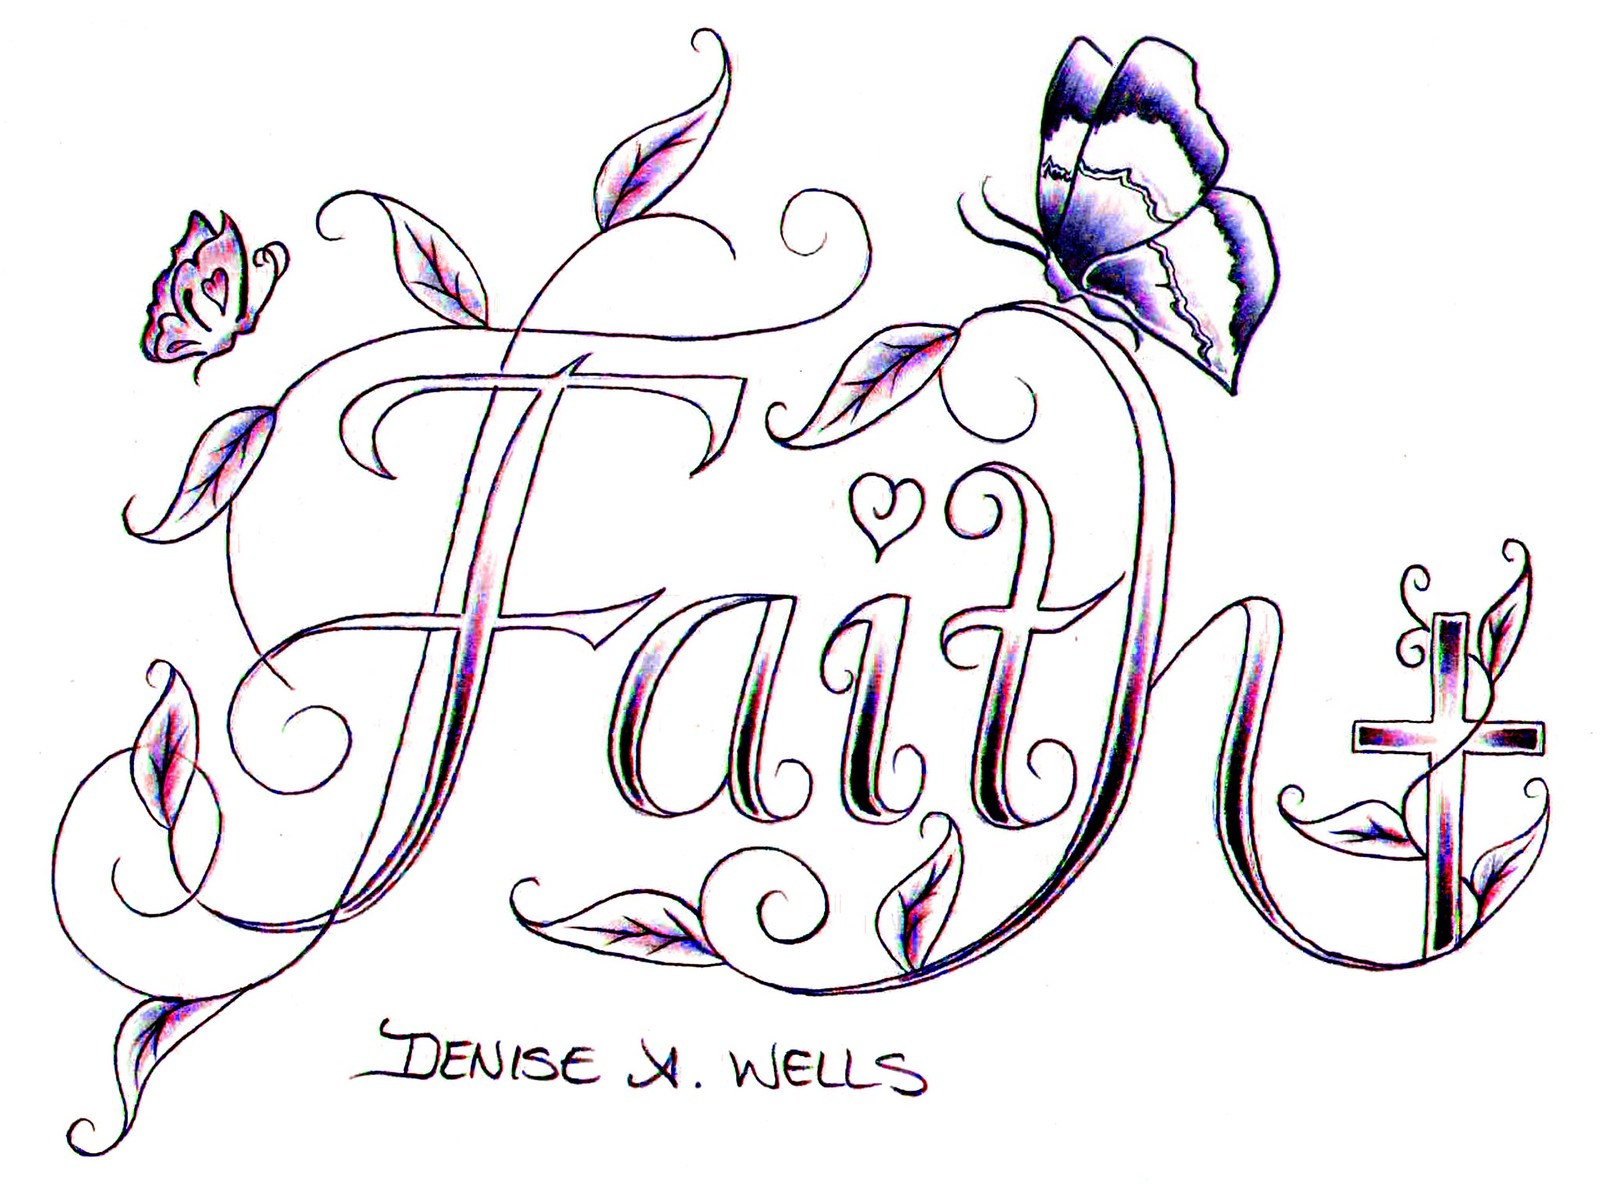 Coloring Pages of the word hope